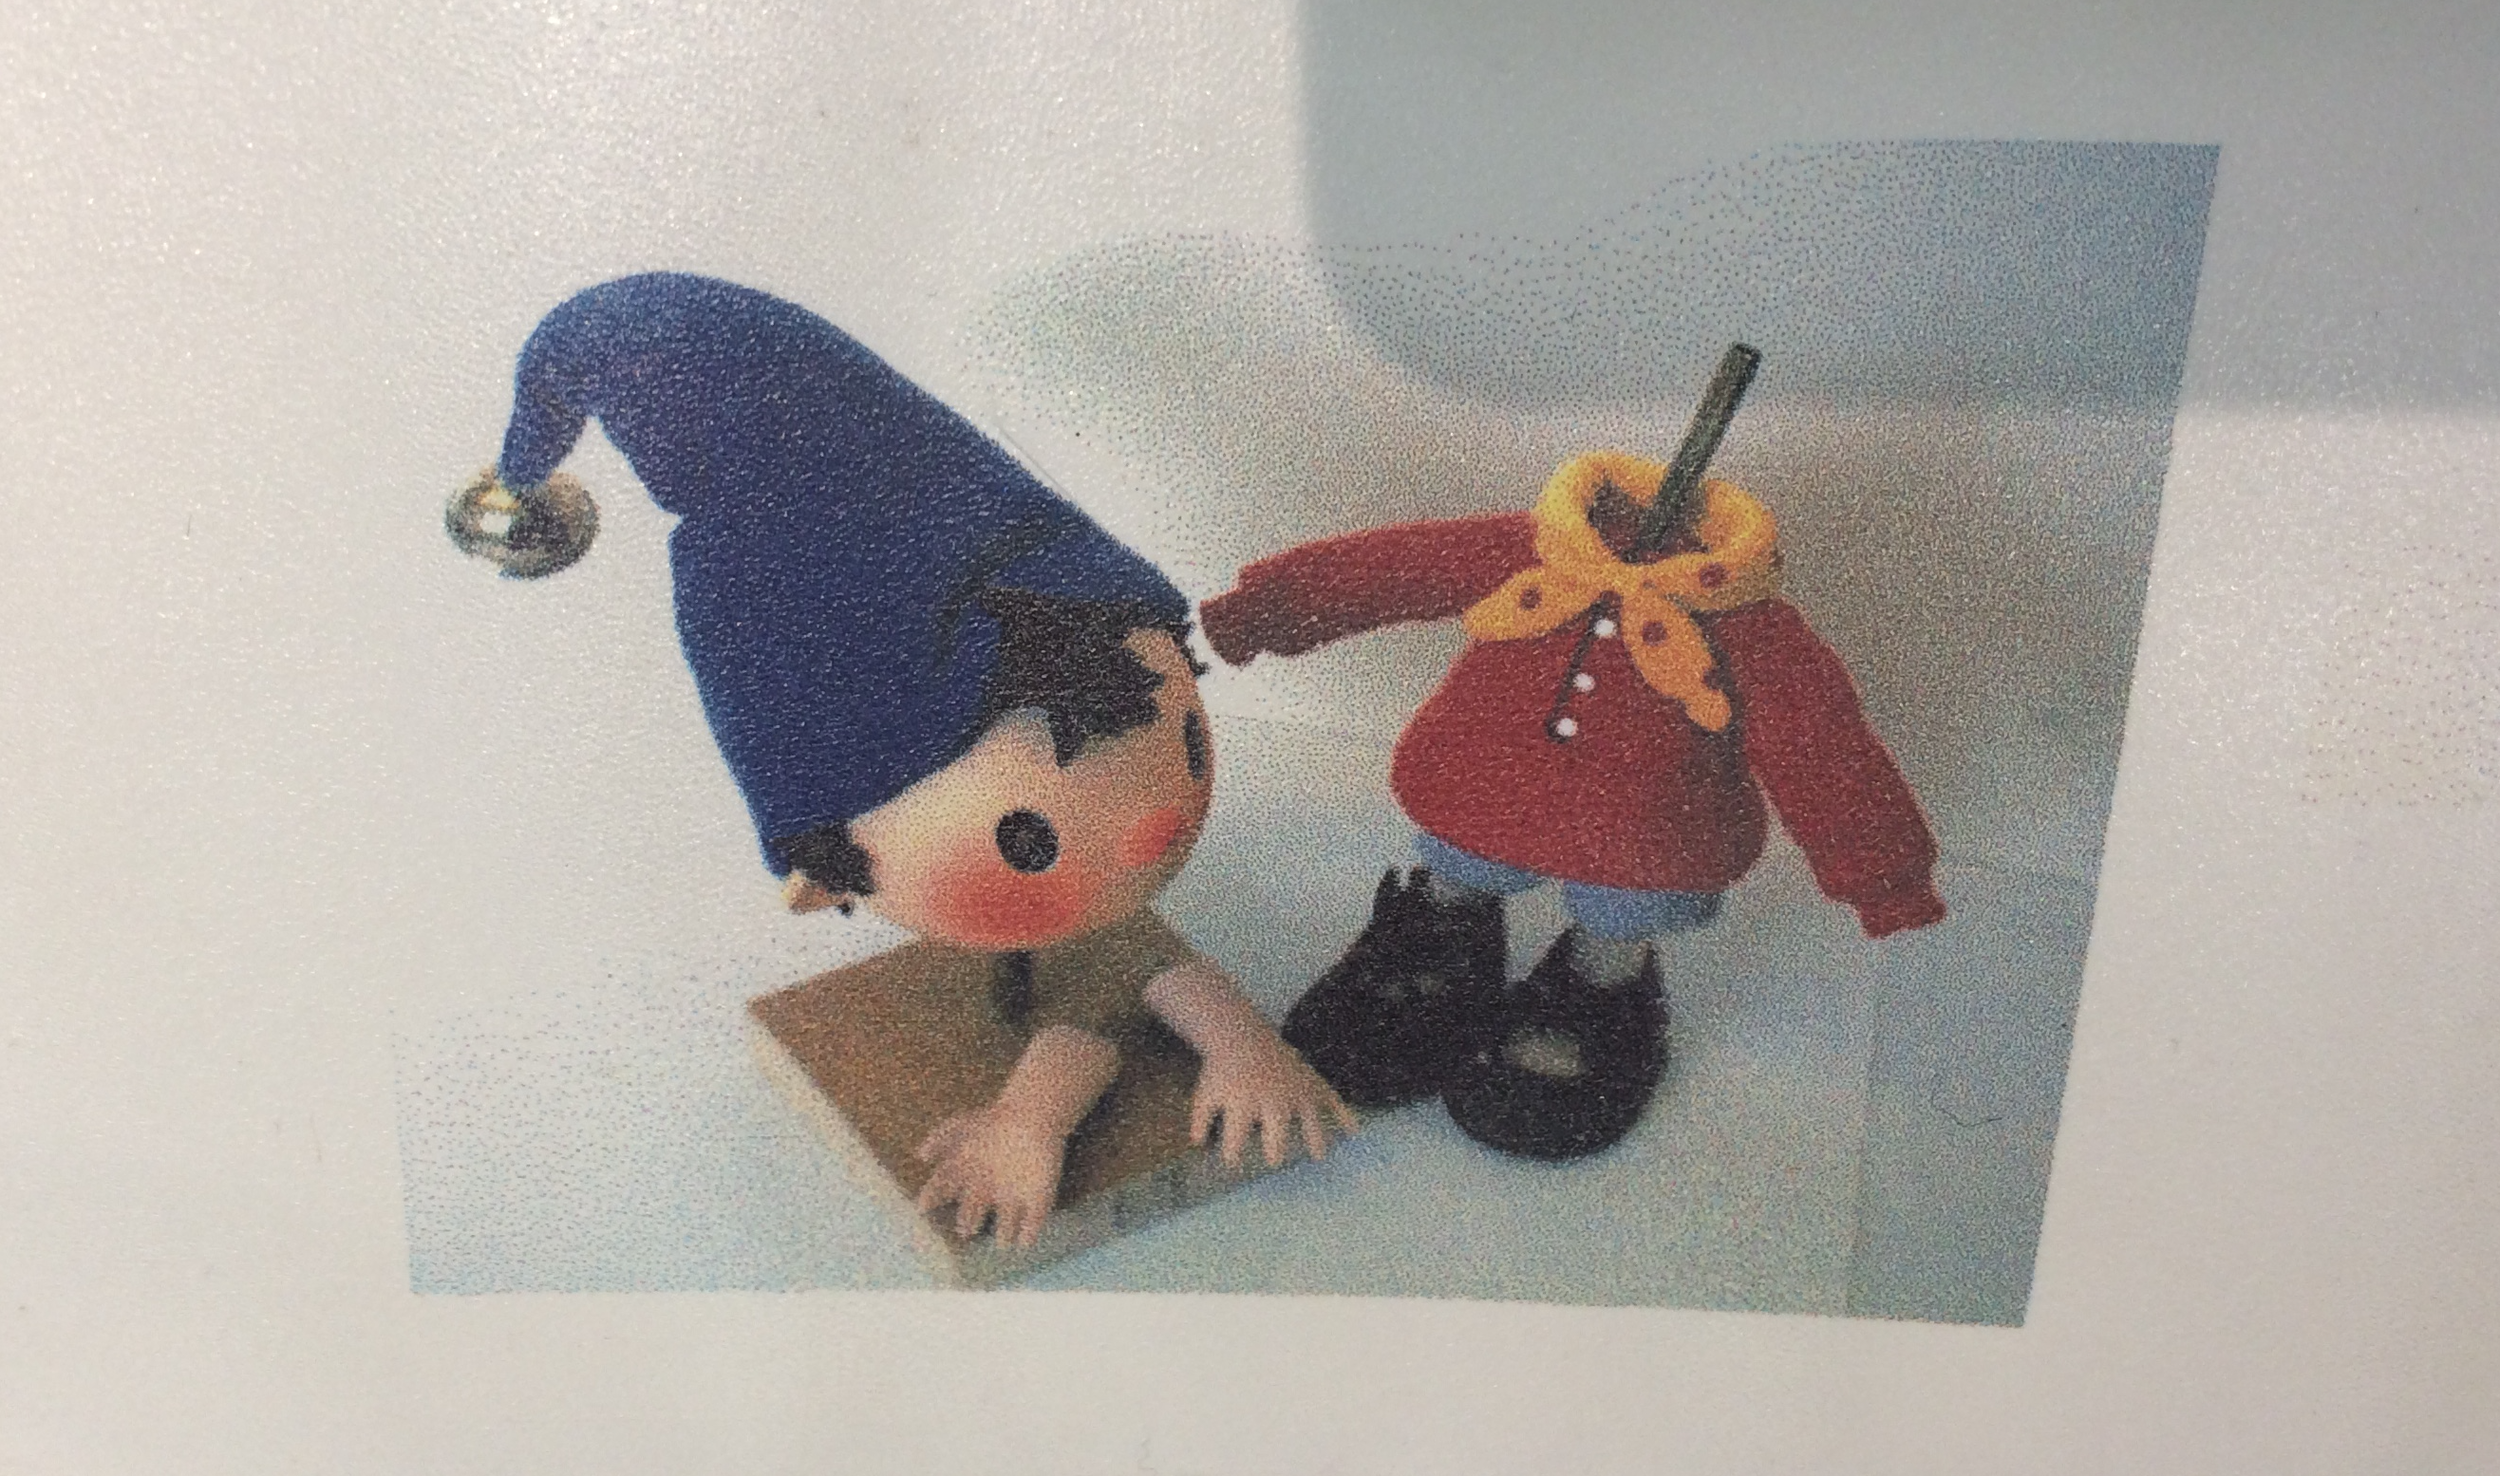 (3) 'I also saw this image of Noddy's Head stuck on a pike!' Image: Niki Hutchinson, 2003